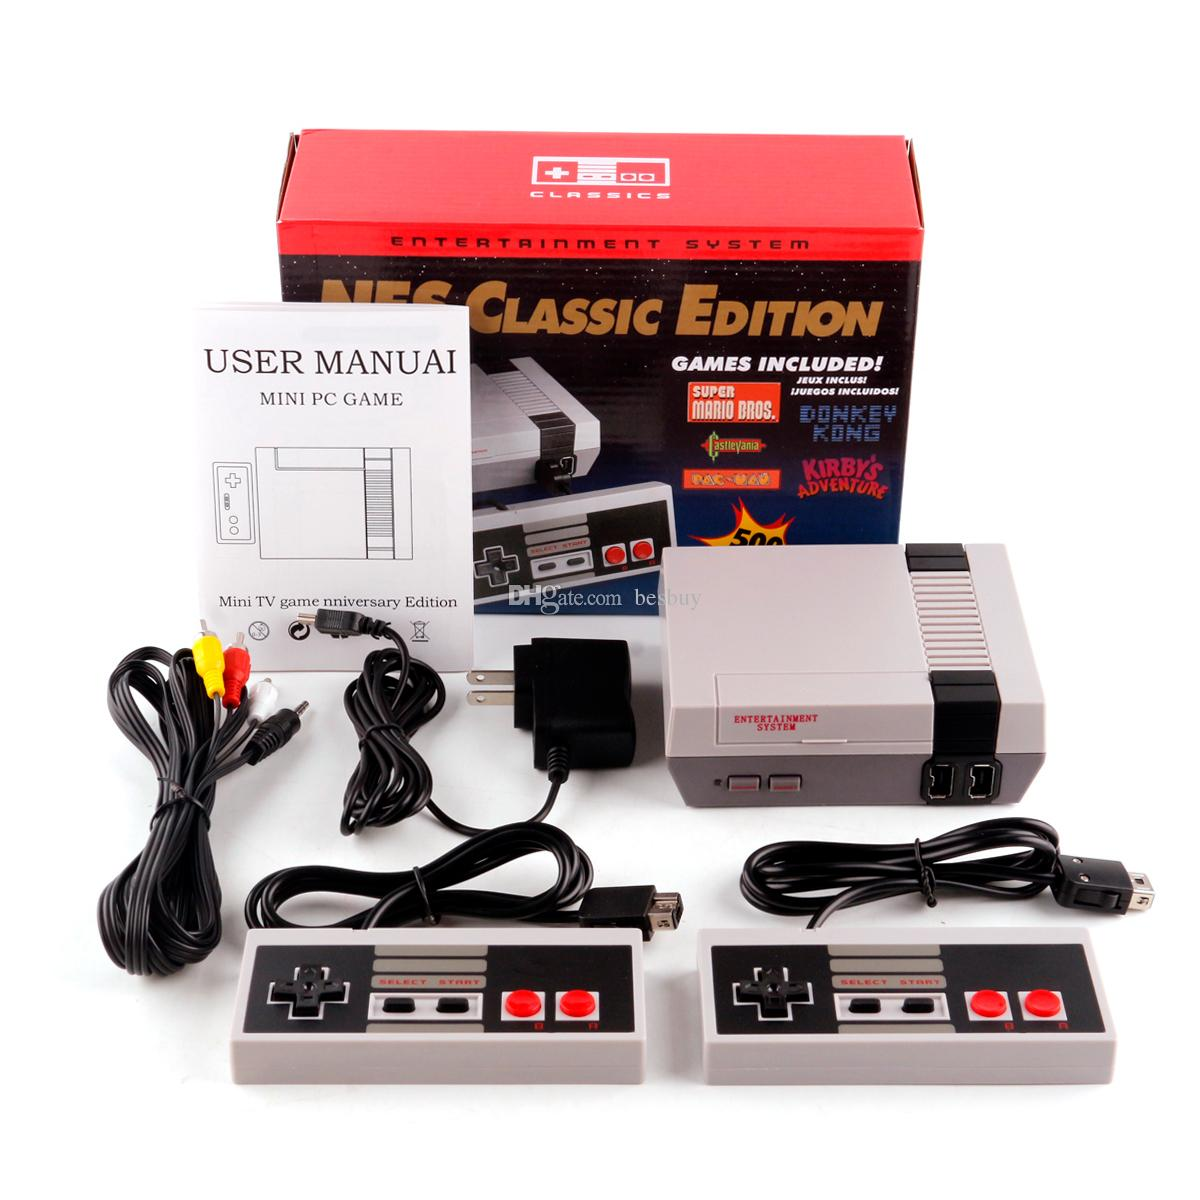 WII HDMI Classic Game TV Video Handheld Console Entertainment System Games For 500 Edition Model NES Mini HD Game Consoles